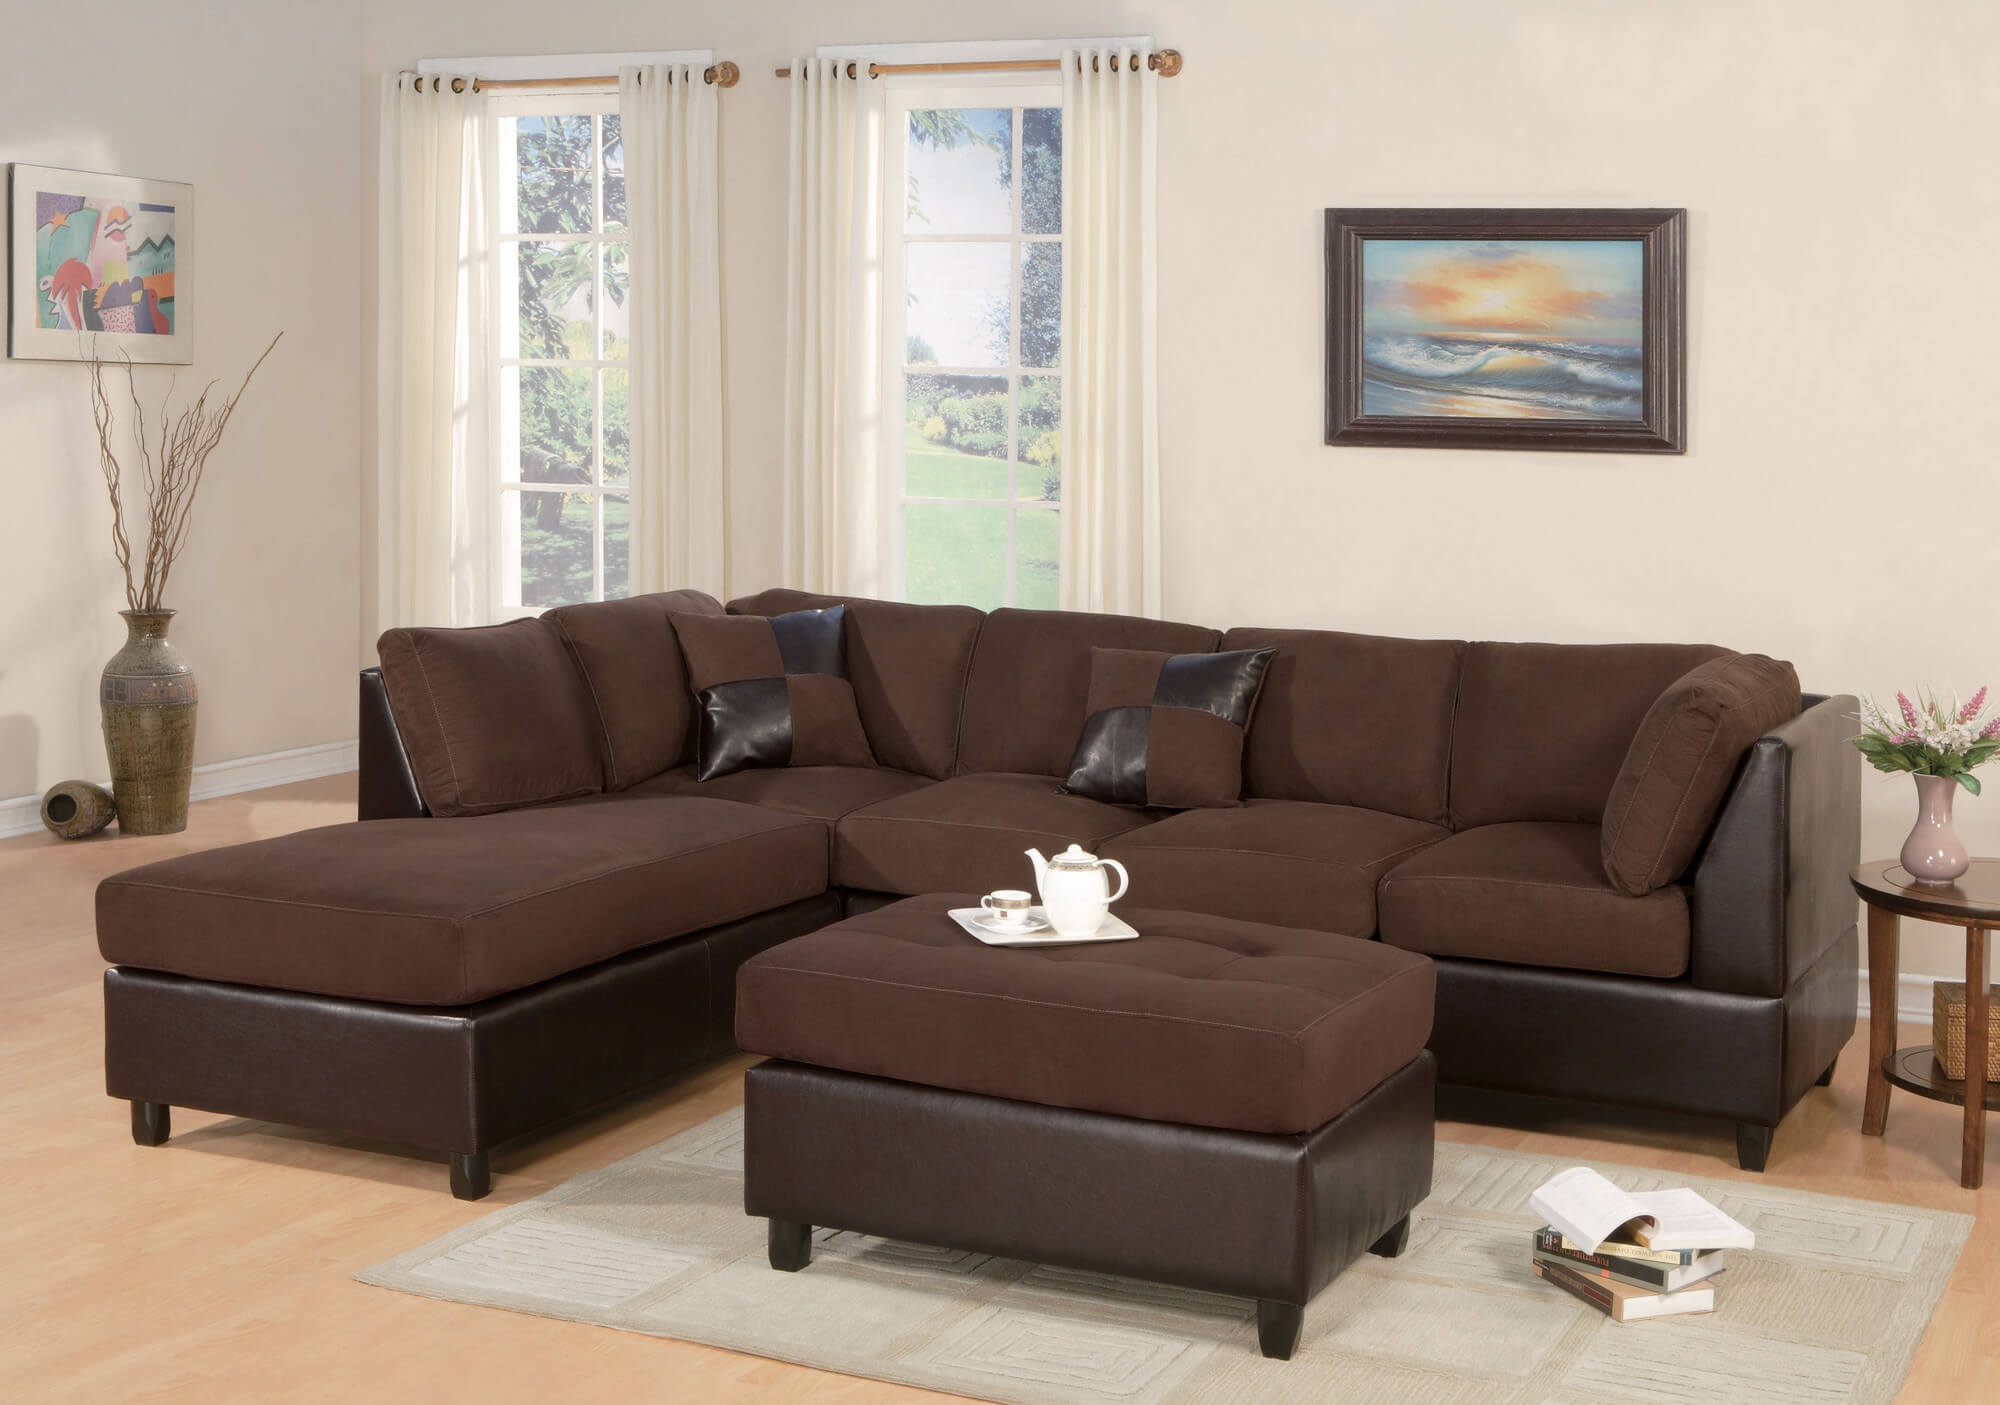 7 Seat Sectional Sofa Sofa Menzilperde For 7 Seat Sectional Sofa (View 7 of 12)